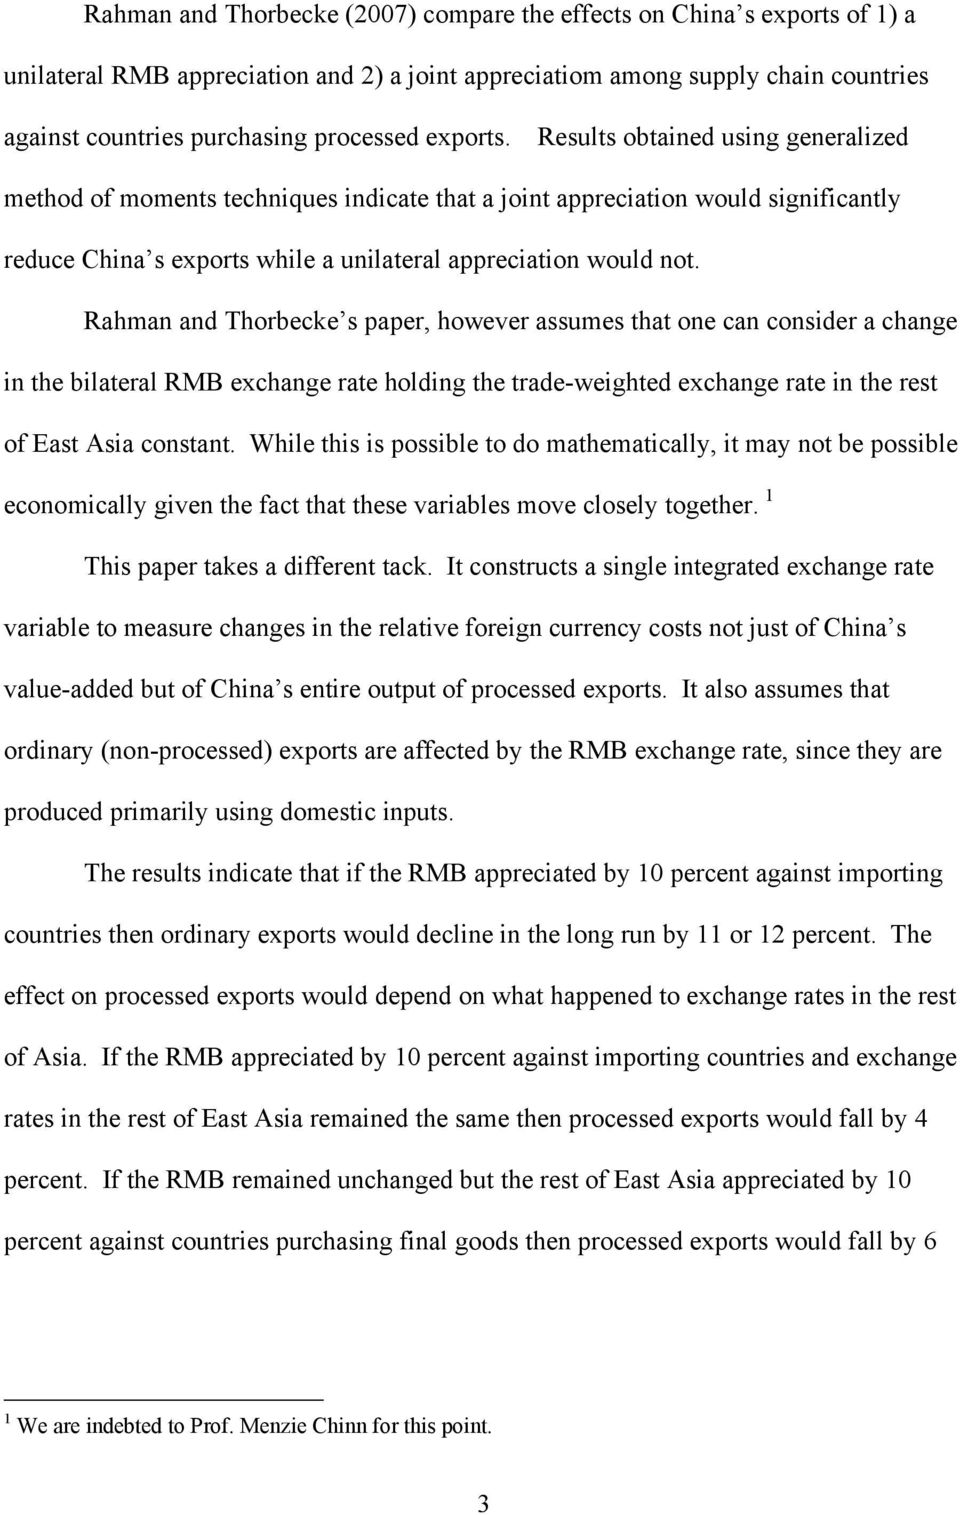 Rahman and Thorbecke s paper, however assumes ha one can consider a change in he bilaeral RMB exchange rae holding he rade-weighed exchange rae in he res of Eas Asia consan.